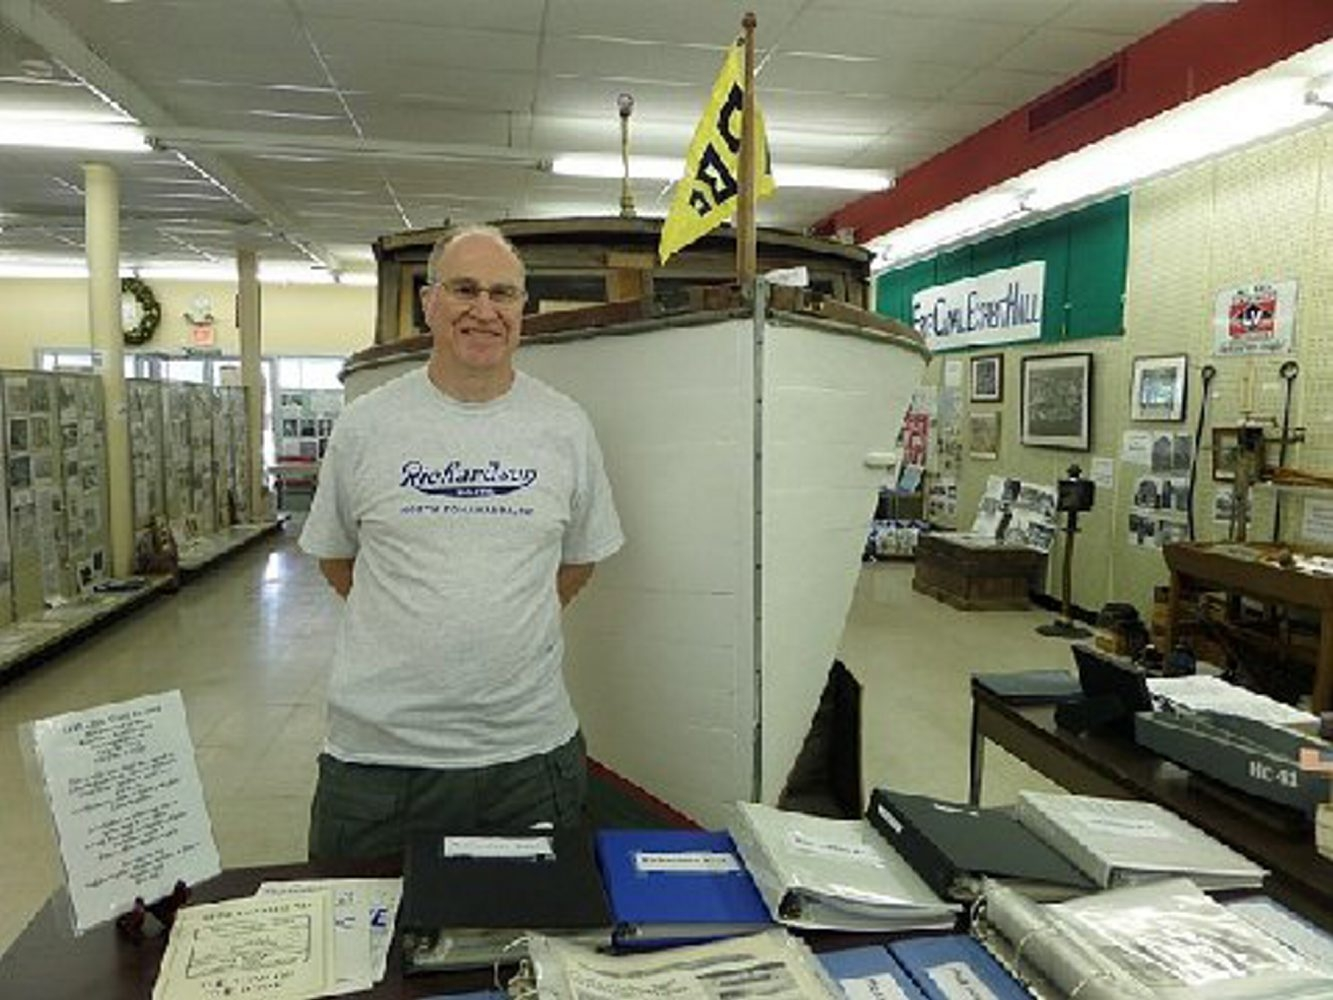 Volunteer William Bauza, a descendant of the Luke family, stands near a display table at the North Tonawanda History Museum, which has several new exhibits on display.